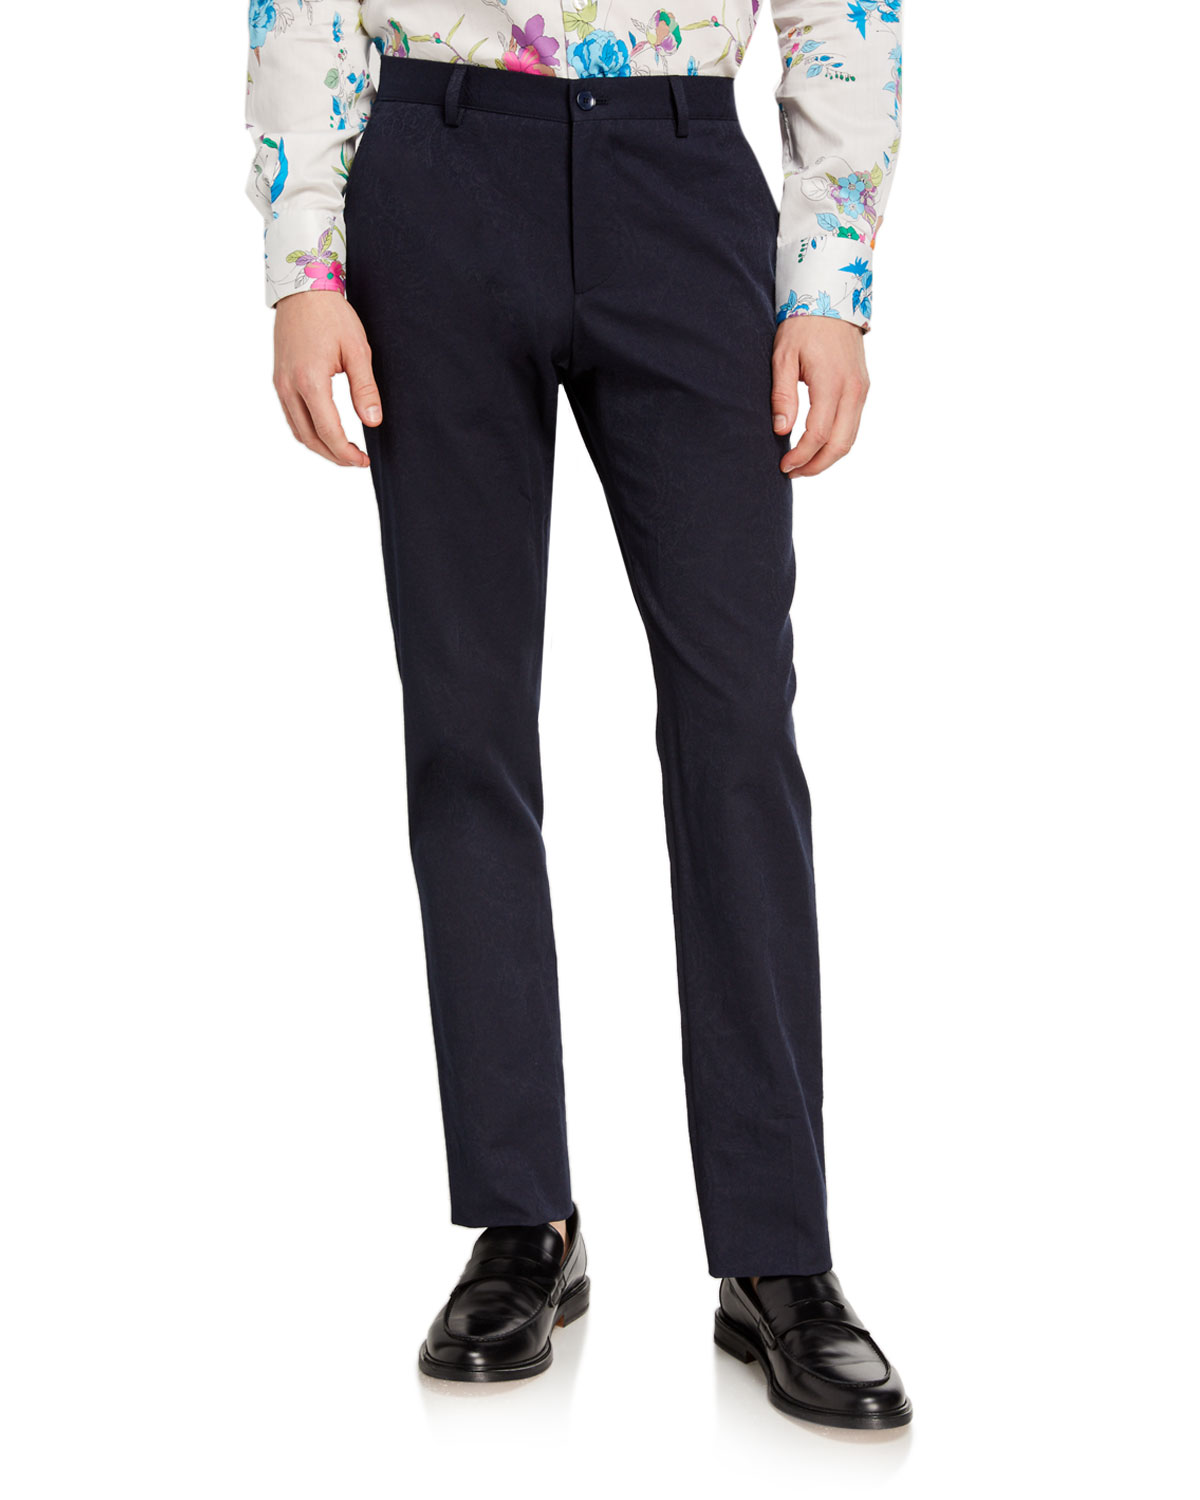 Etro Knits MEN'S PAISLEY SOLID-KNIT TROUSERS